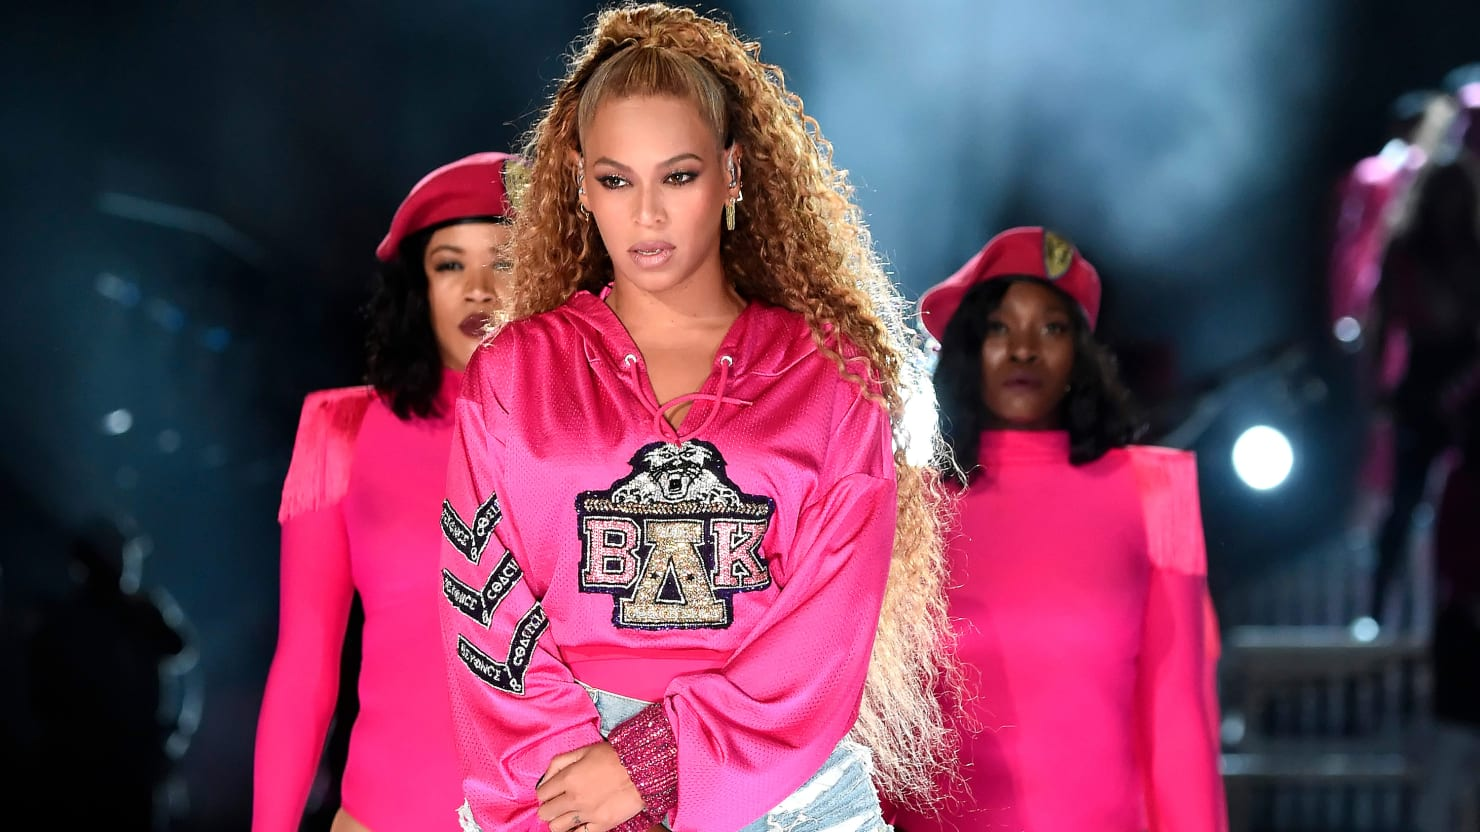 Beyoncé Lost Big at the Emmys and Her Fans Are Out for Blood